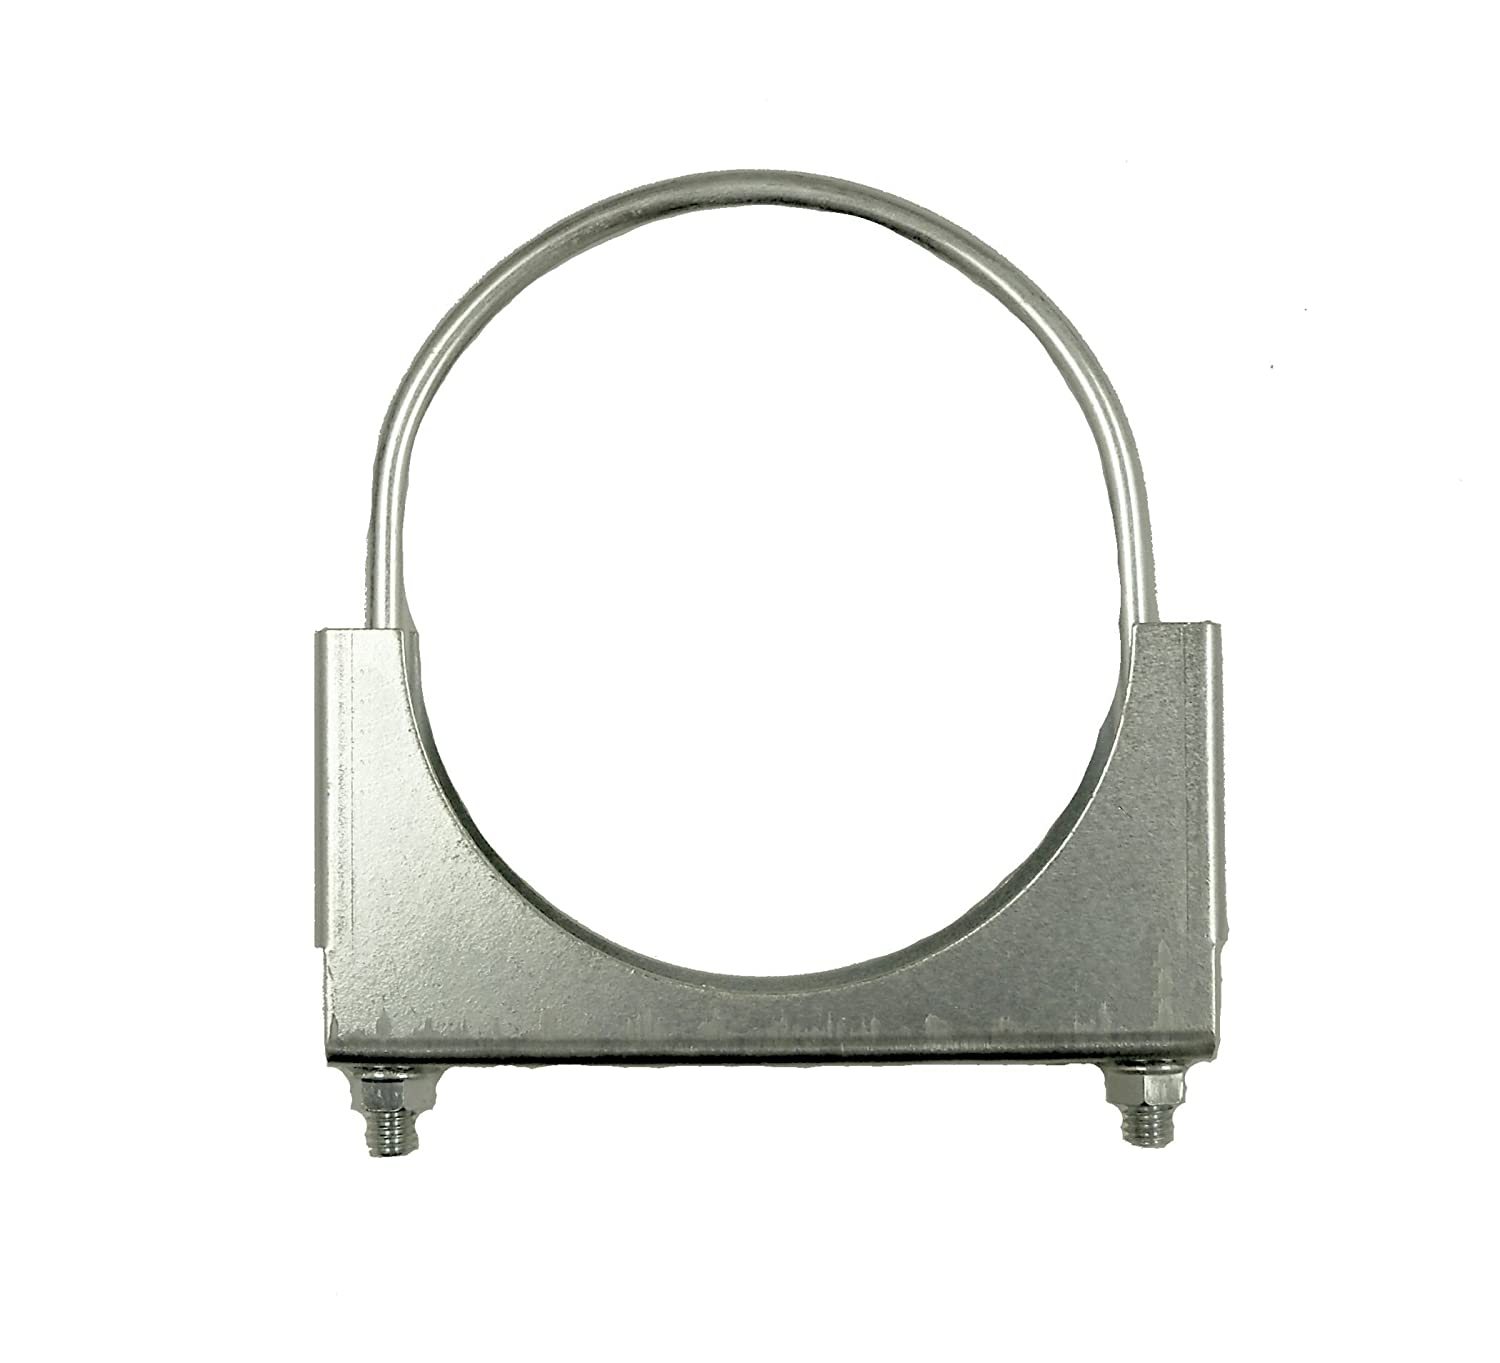 SmartParts 610400 4' Zinc Plated Round U Bolt Saddle Exhaust Clamp